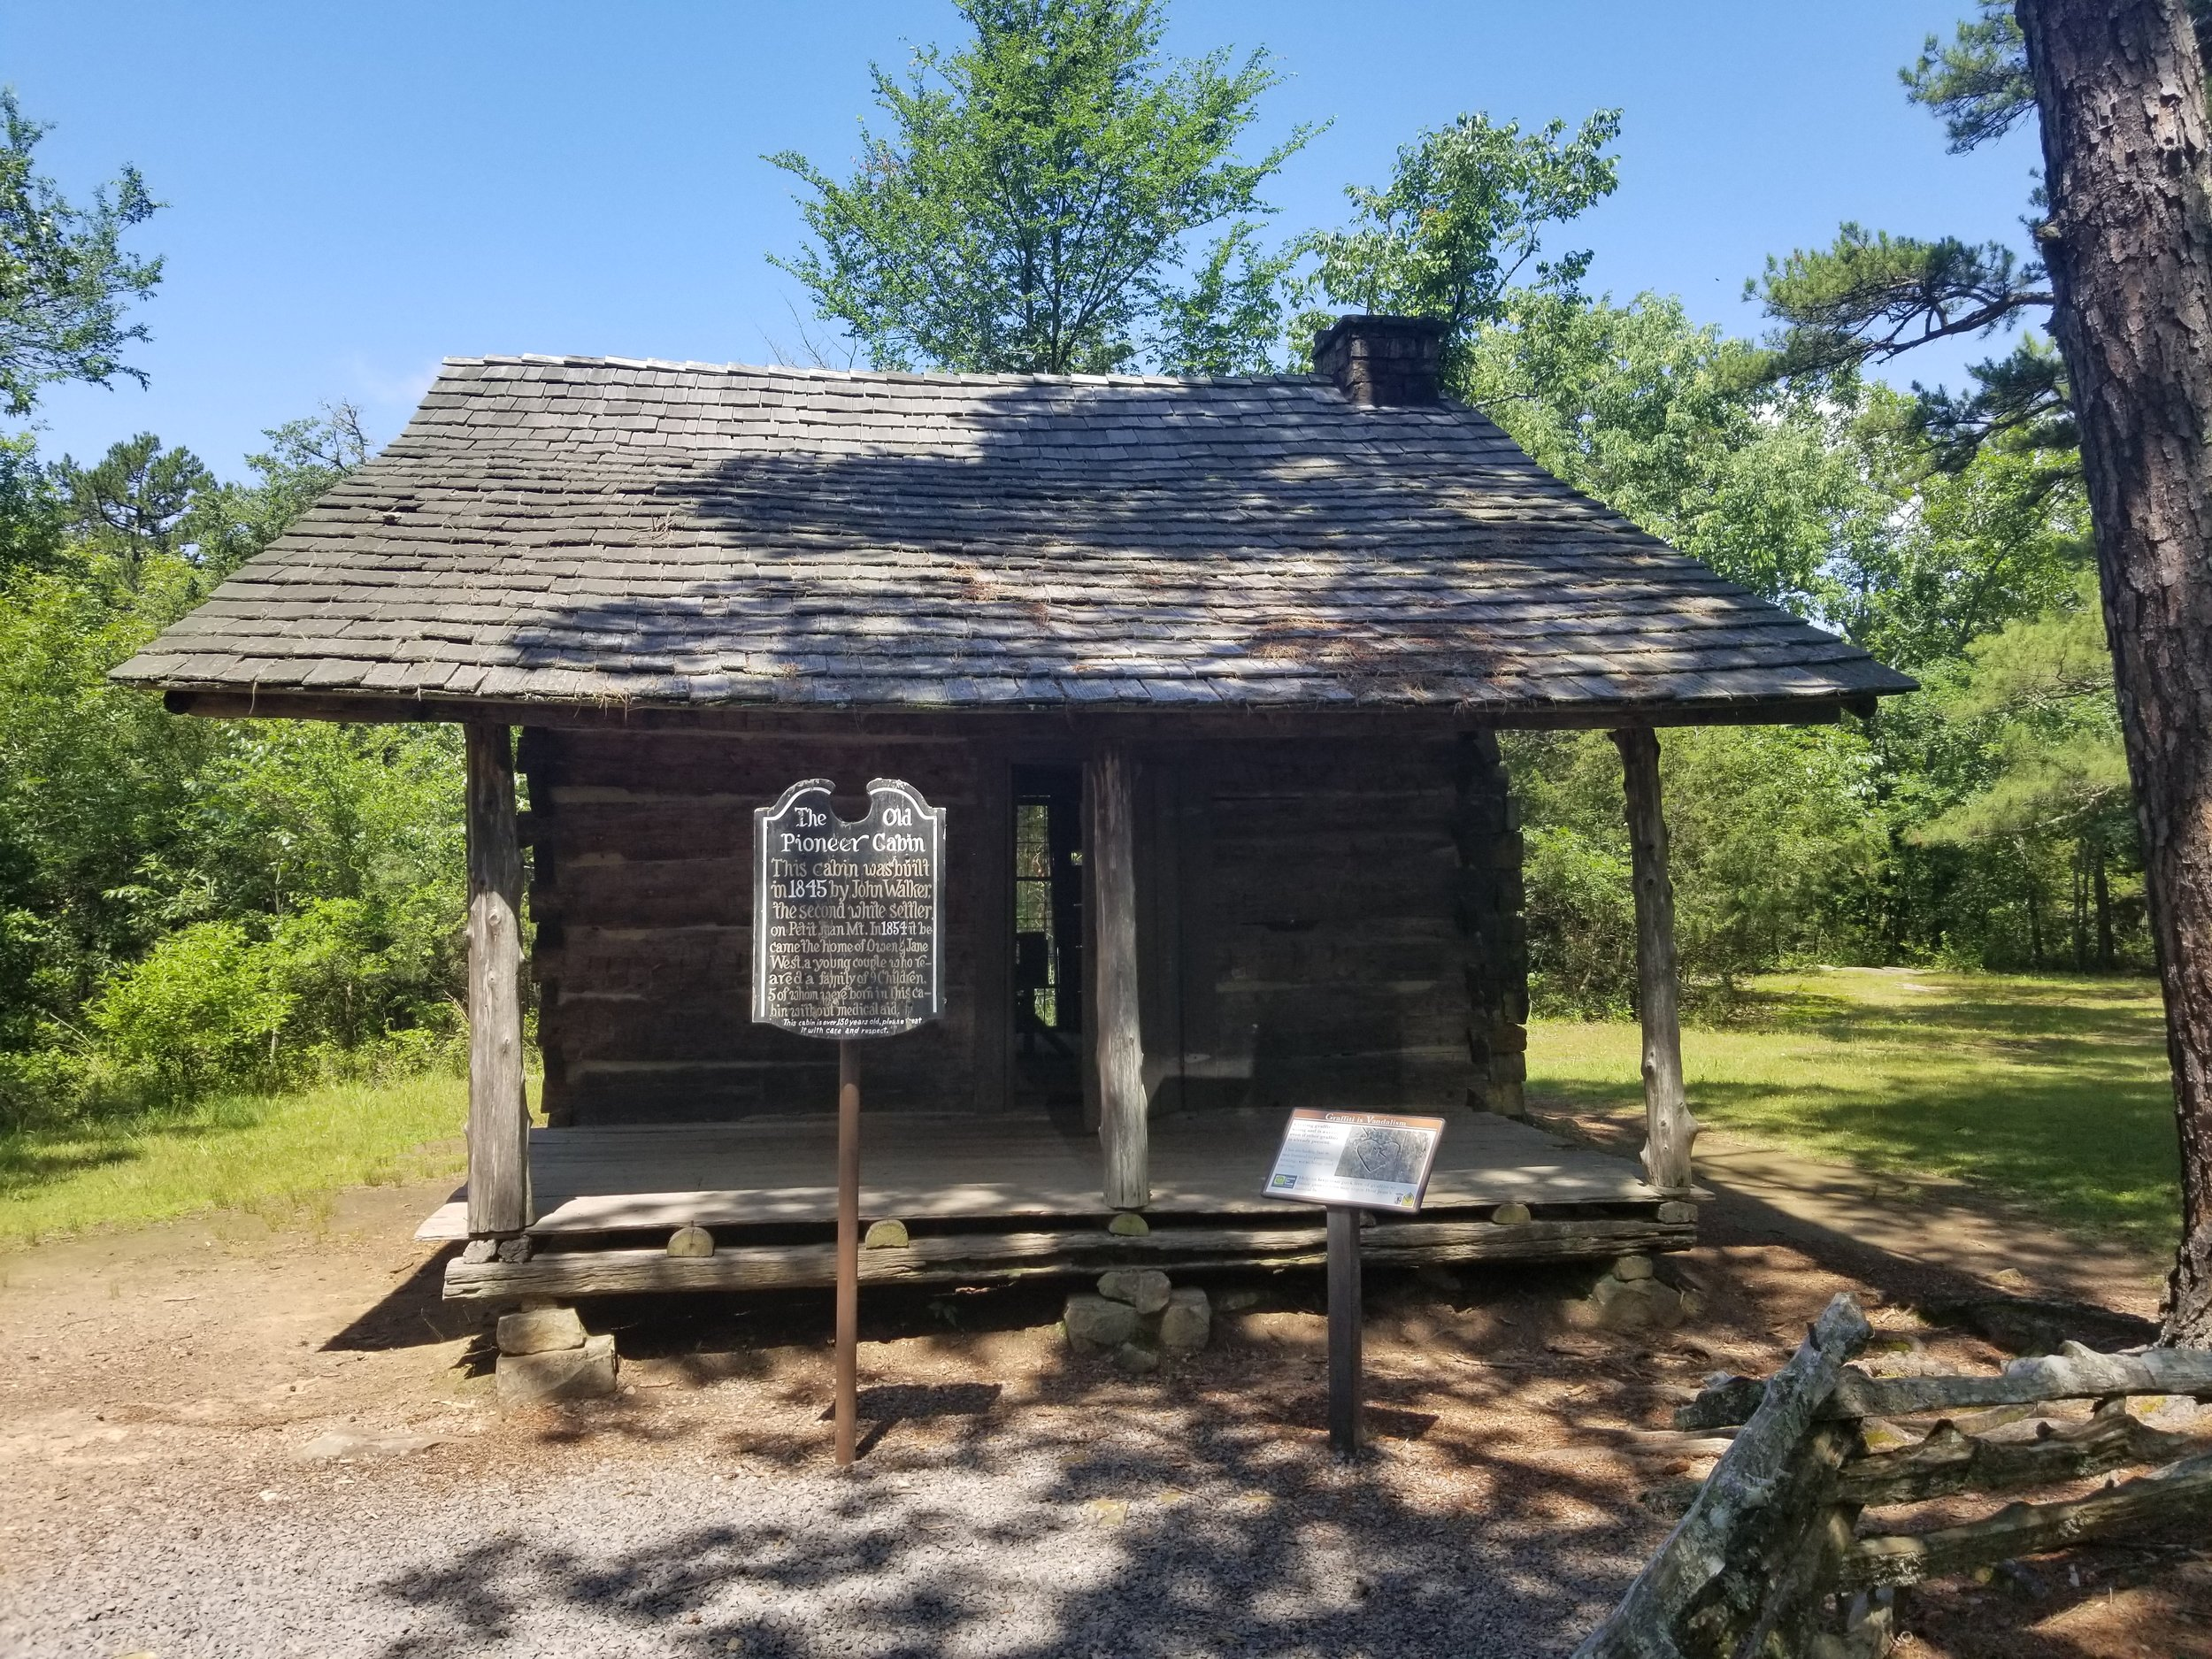 The Old Pioneer Cabin - This cabin was built in 1845